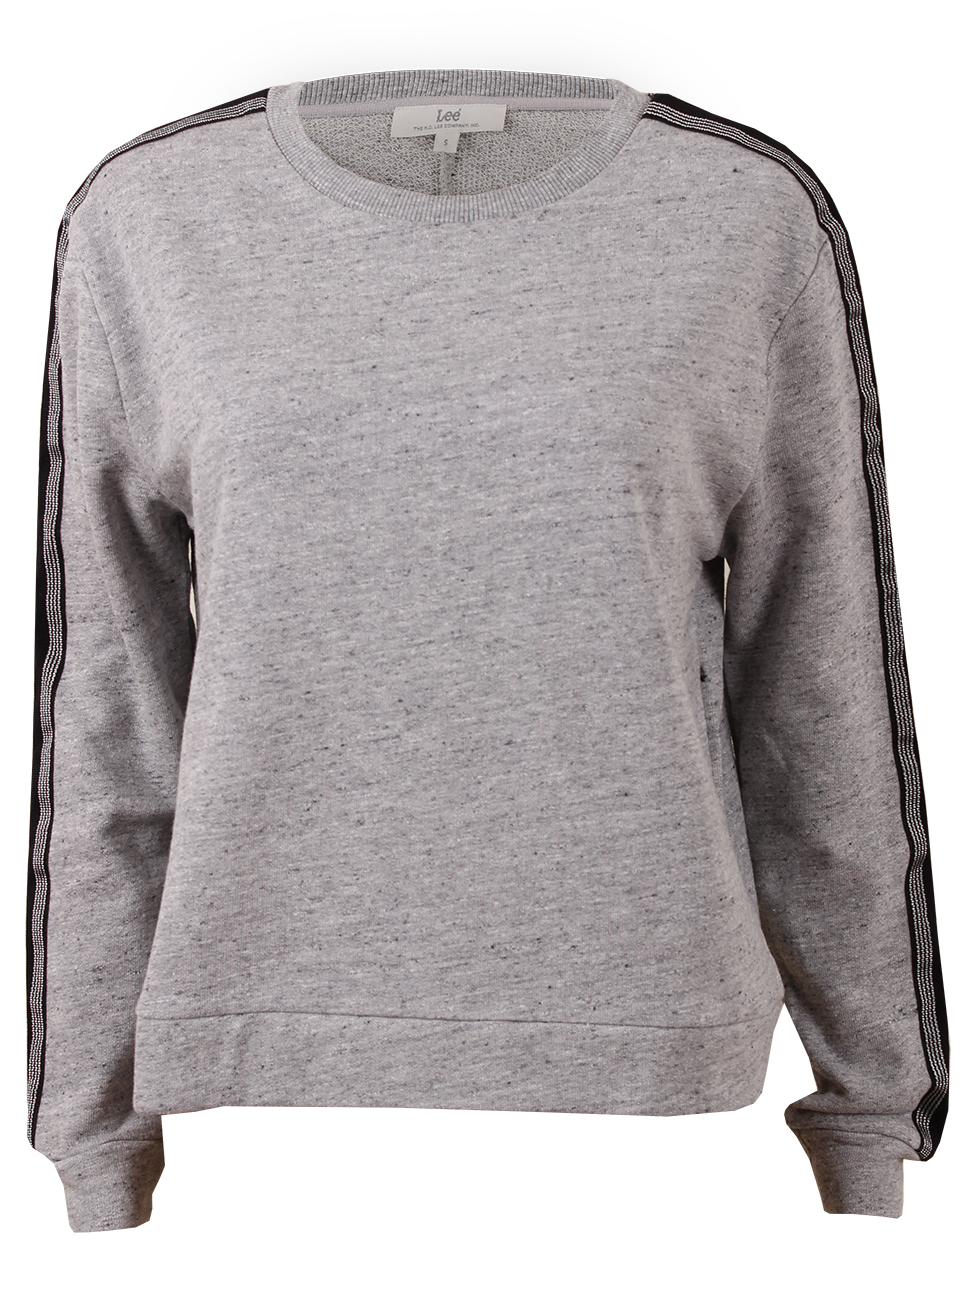 Lee Damen Sweatshirt Taped kaufen - JEANS-DIRECT.DE feba8b947f